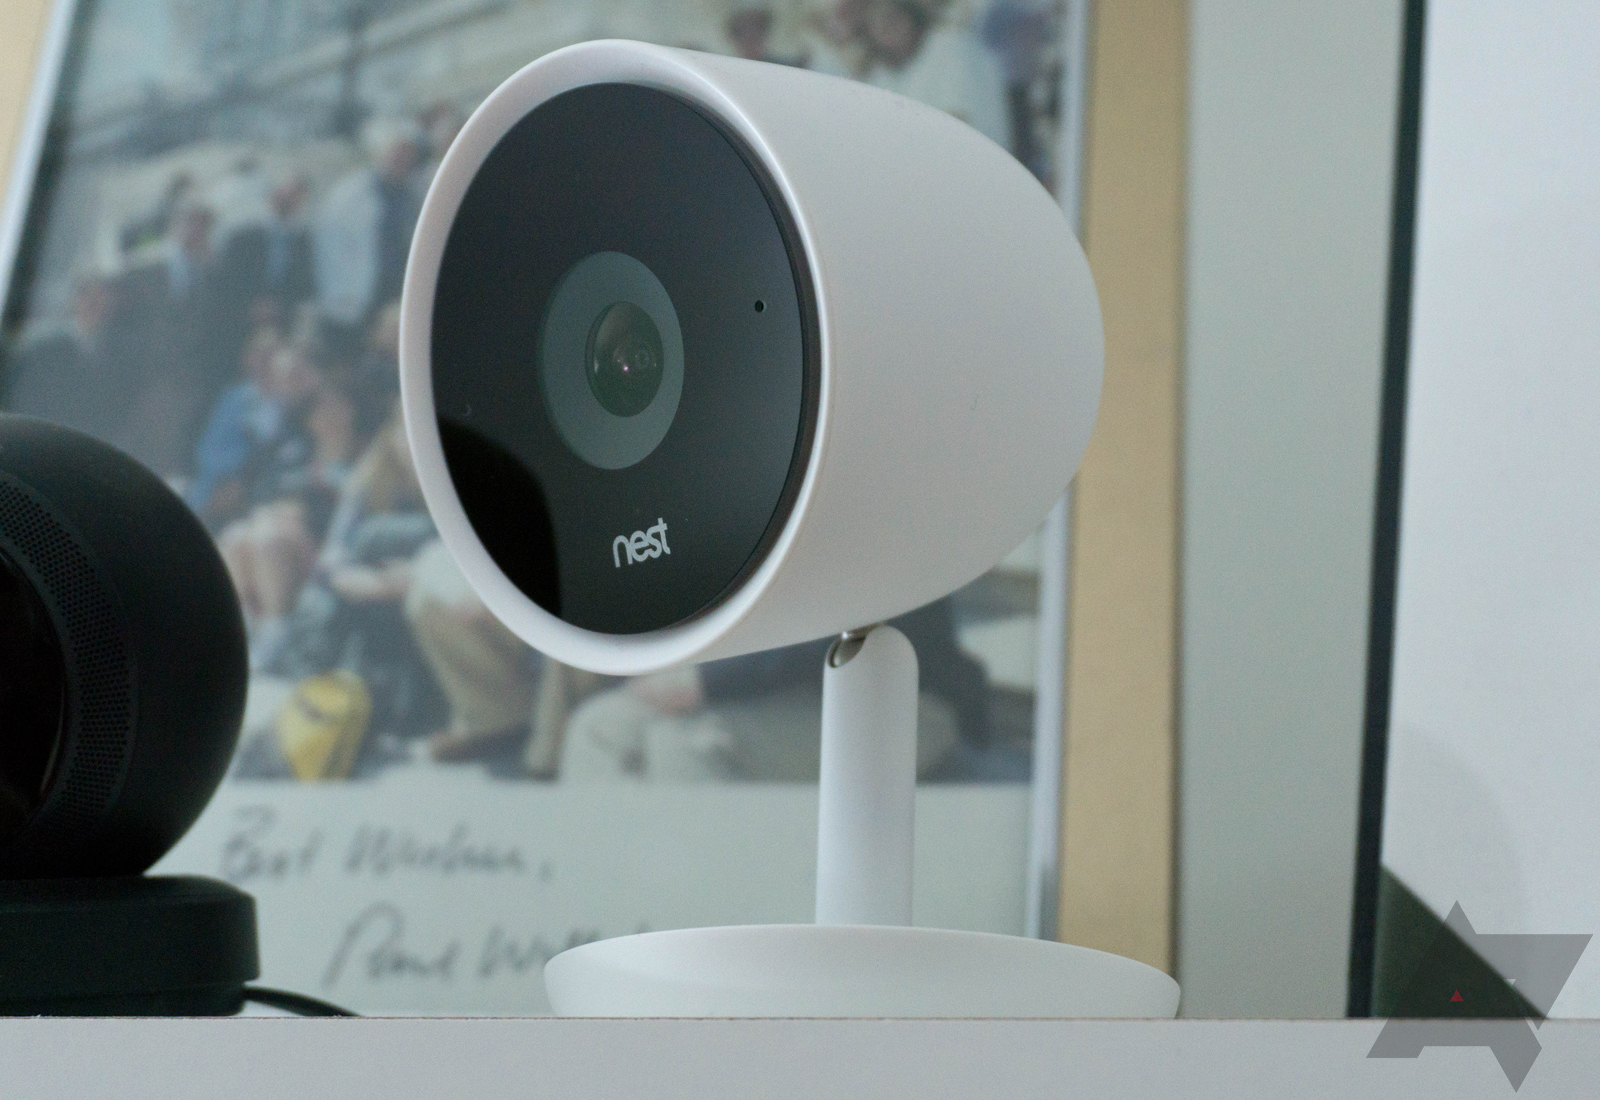 Why the hell are Google's Nest cameras so expensive?